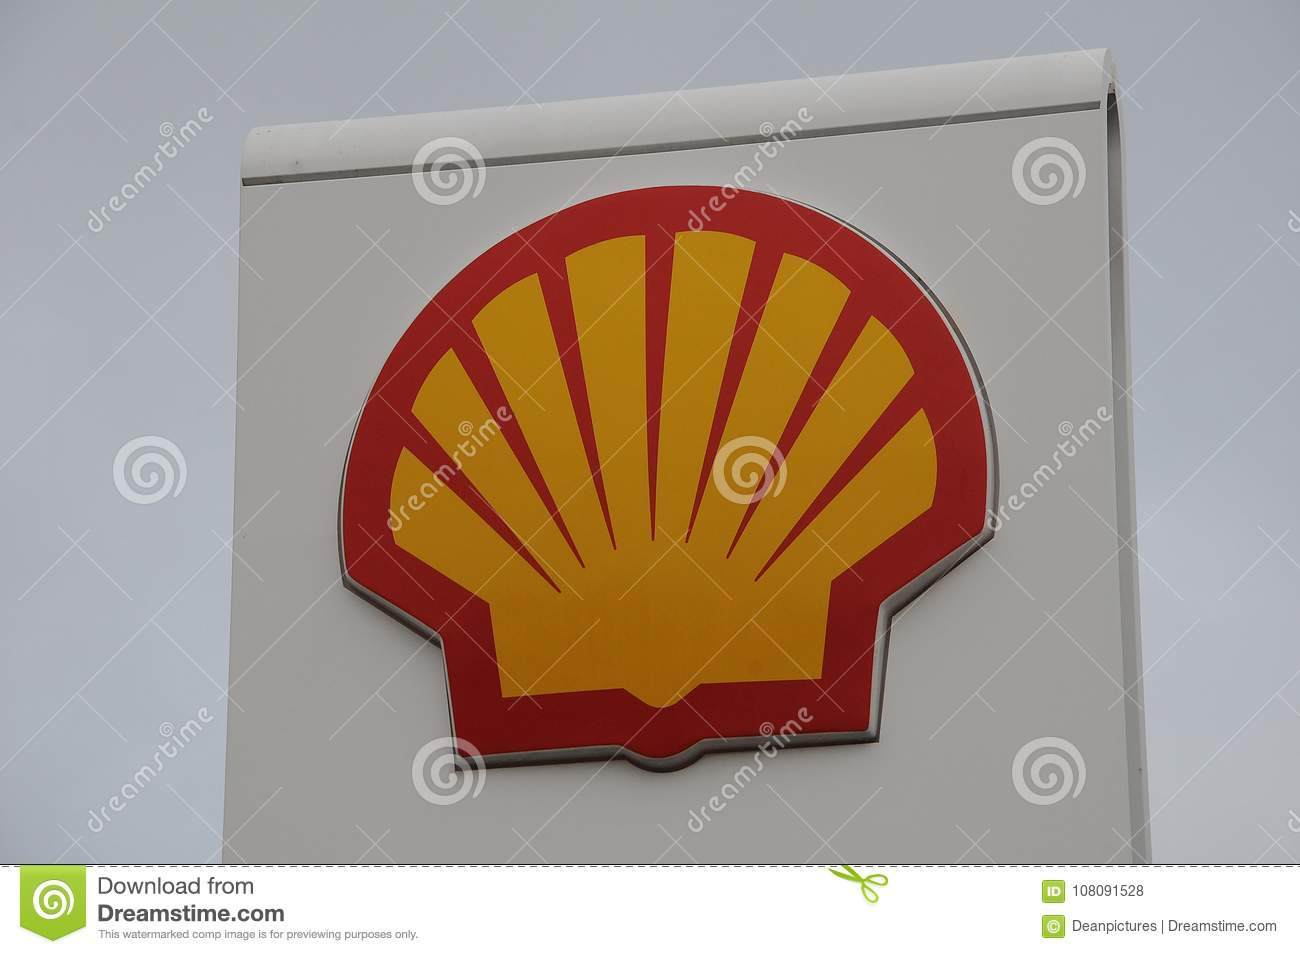 Shell Gas Station Editorial Stock Photo Image Of Denmark 108091528